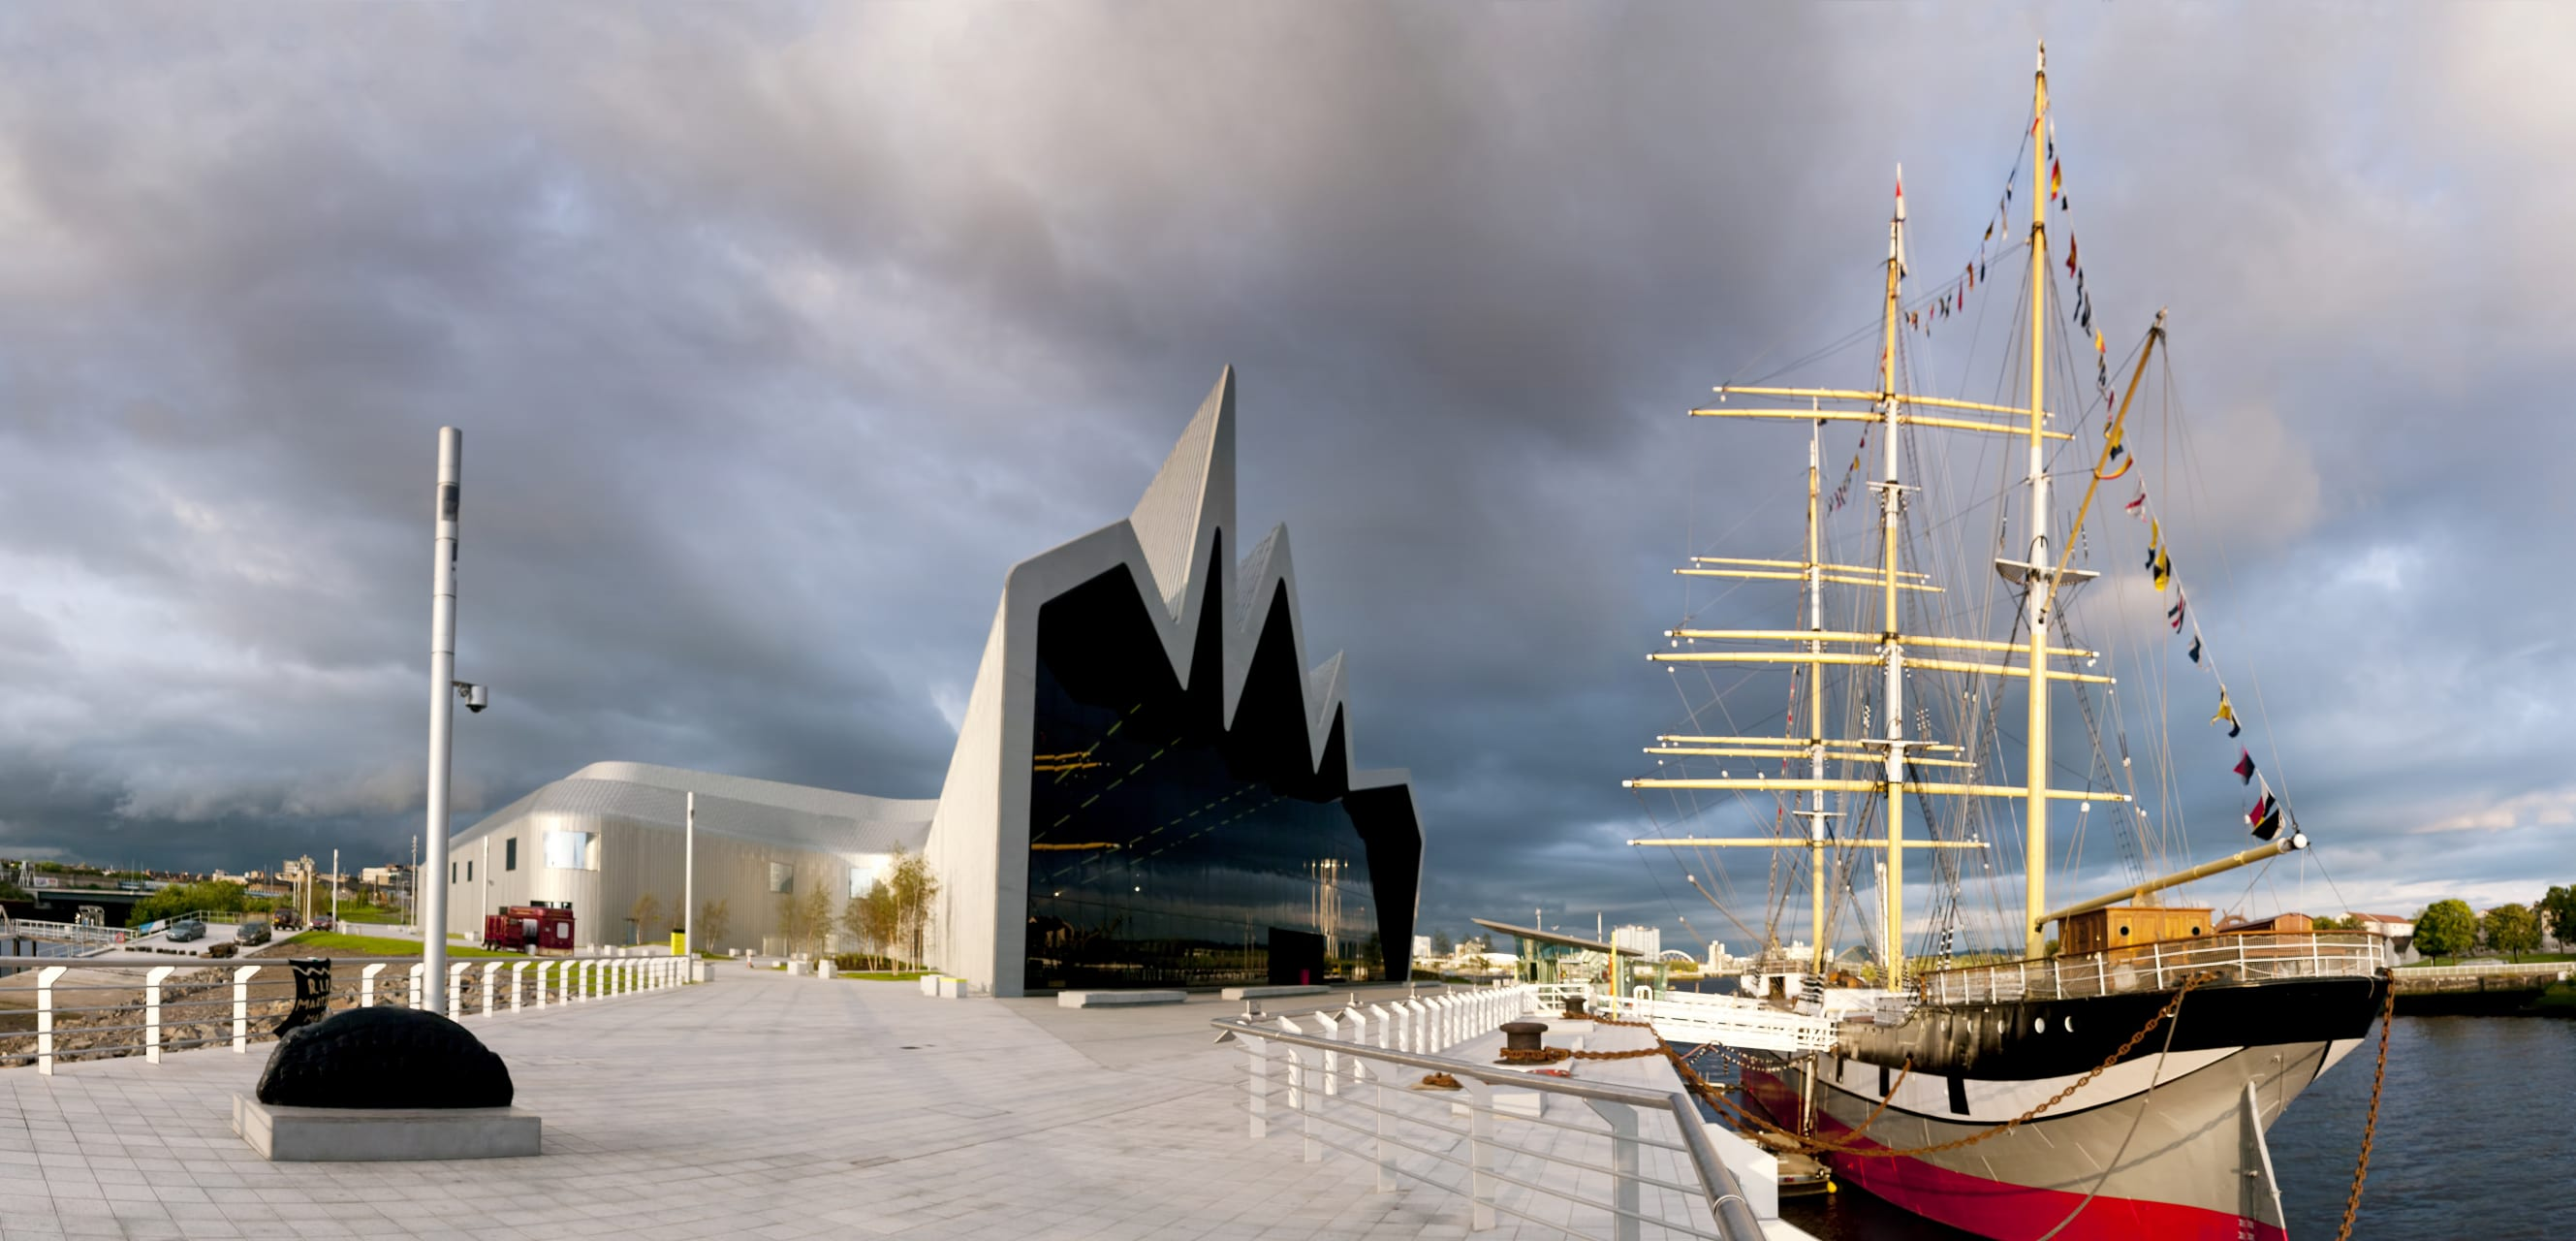 Glasgow - The Riverside Museum and the Tall Ship Glenlee